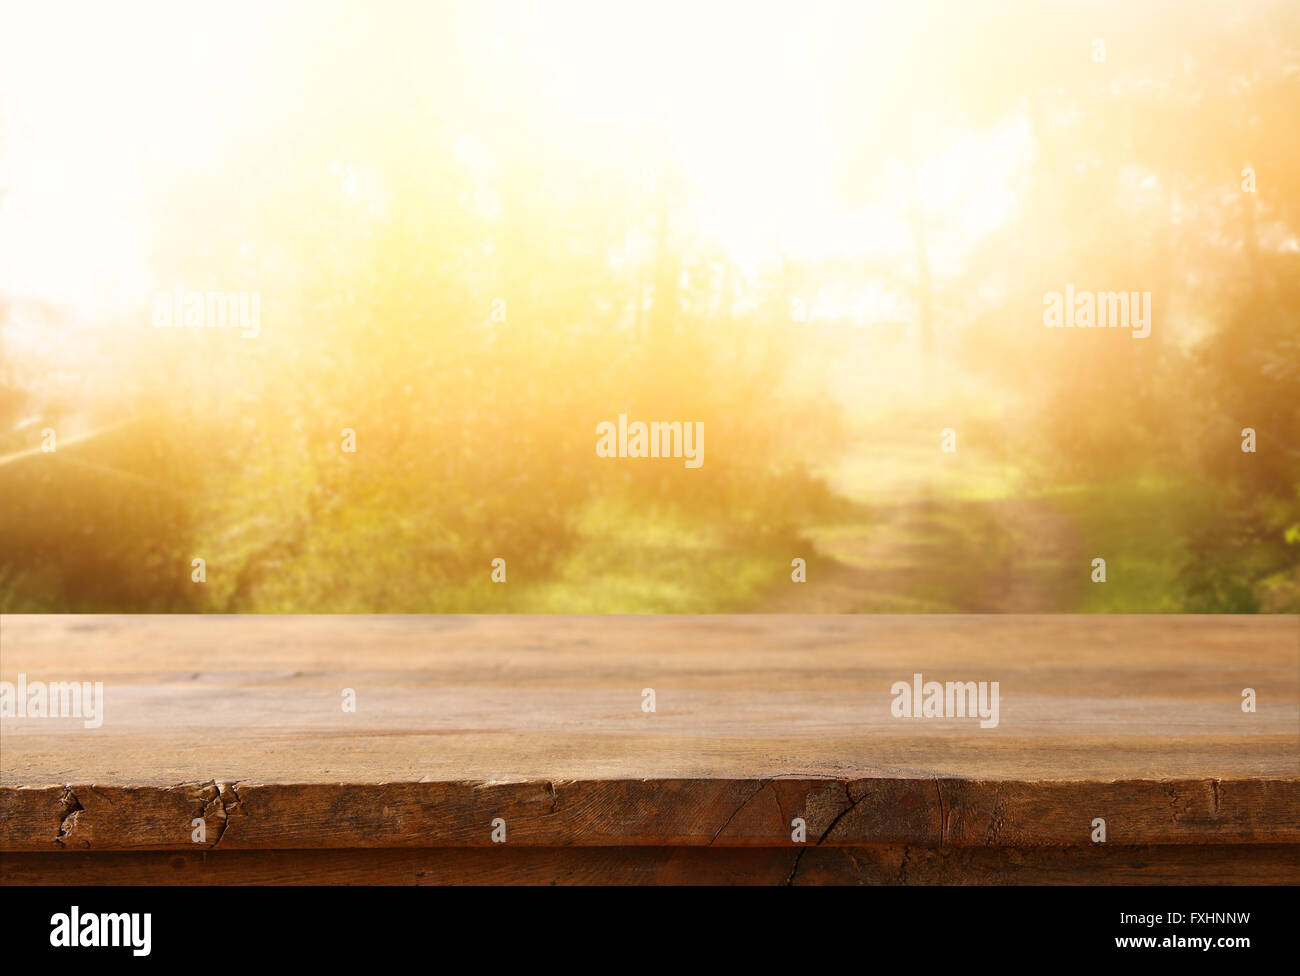 front rustic wood boards and abstract forest background. vintage filtered and toned. - Stock Image